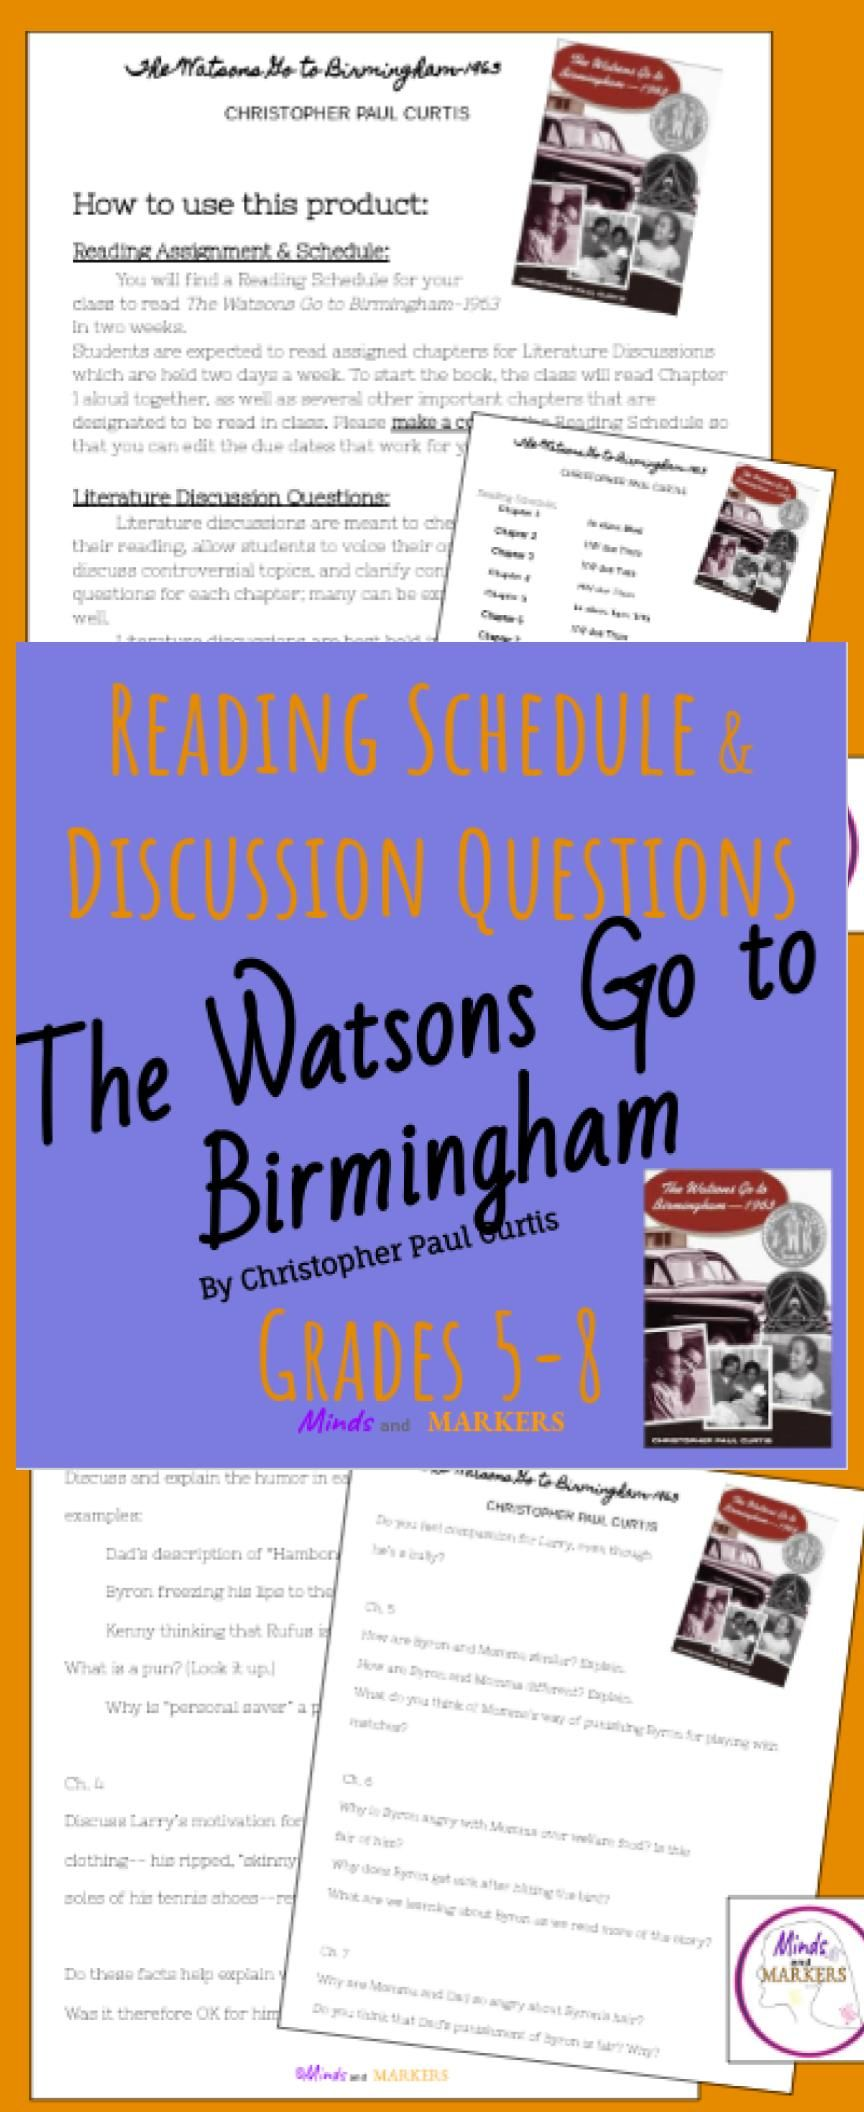 The Watsons Go To Birmingham Reading Schedule Discussion